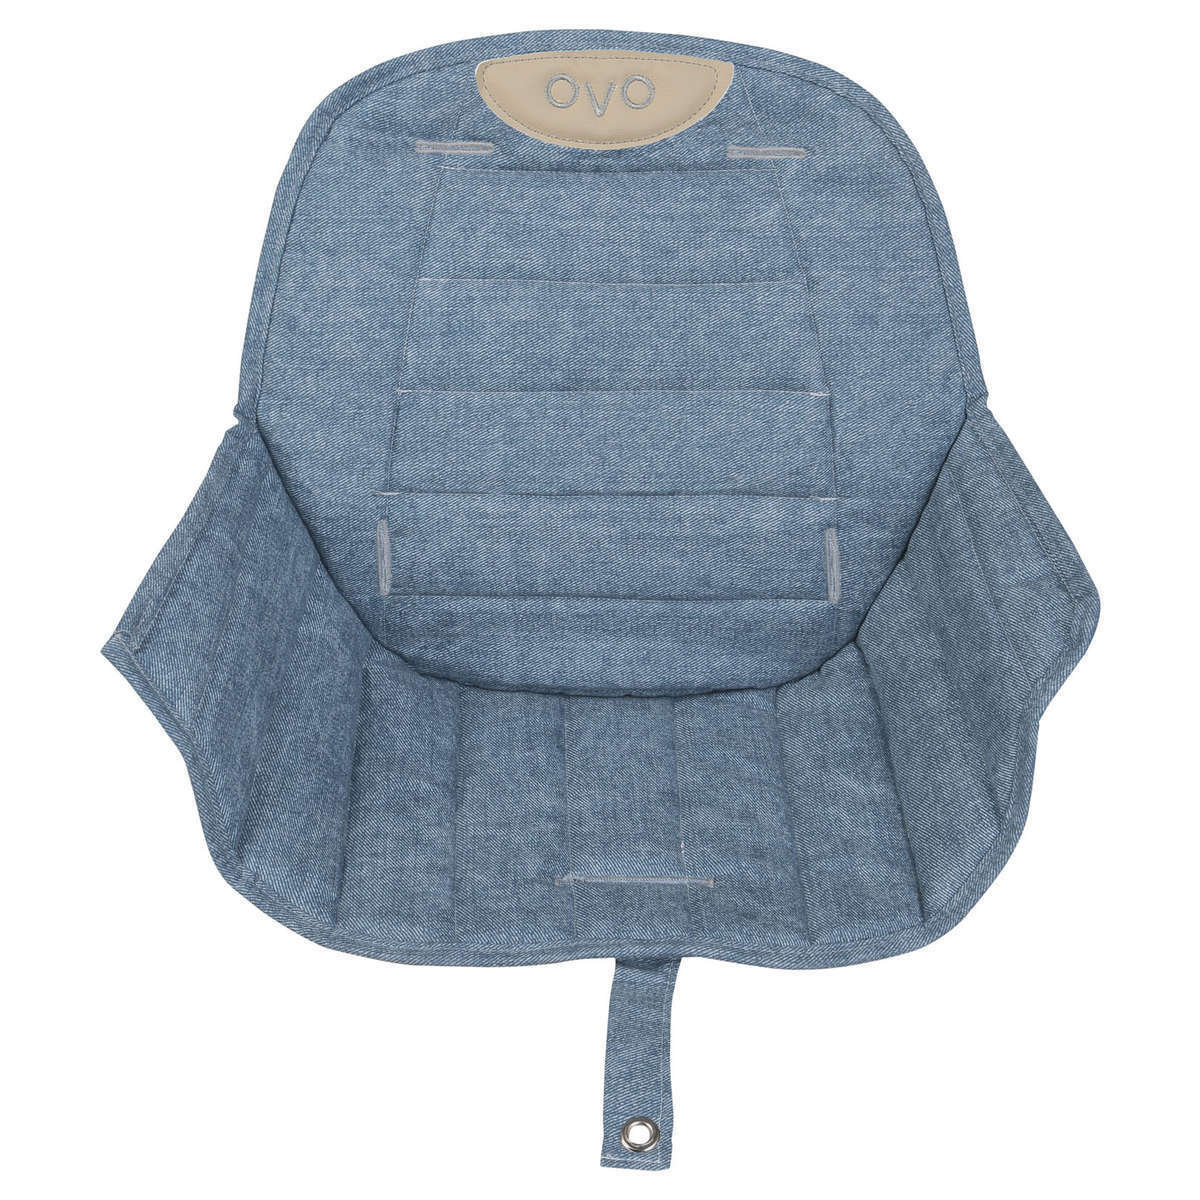 Chaise haute Assise Ovo - Jeans Assise Ovo - Jeans